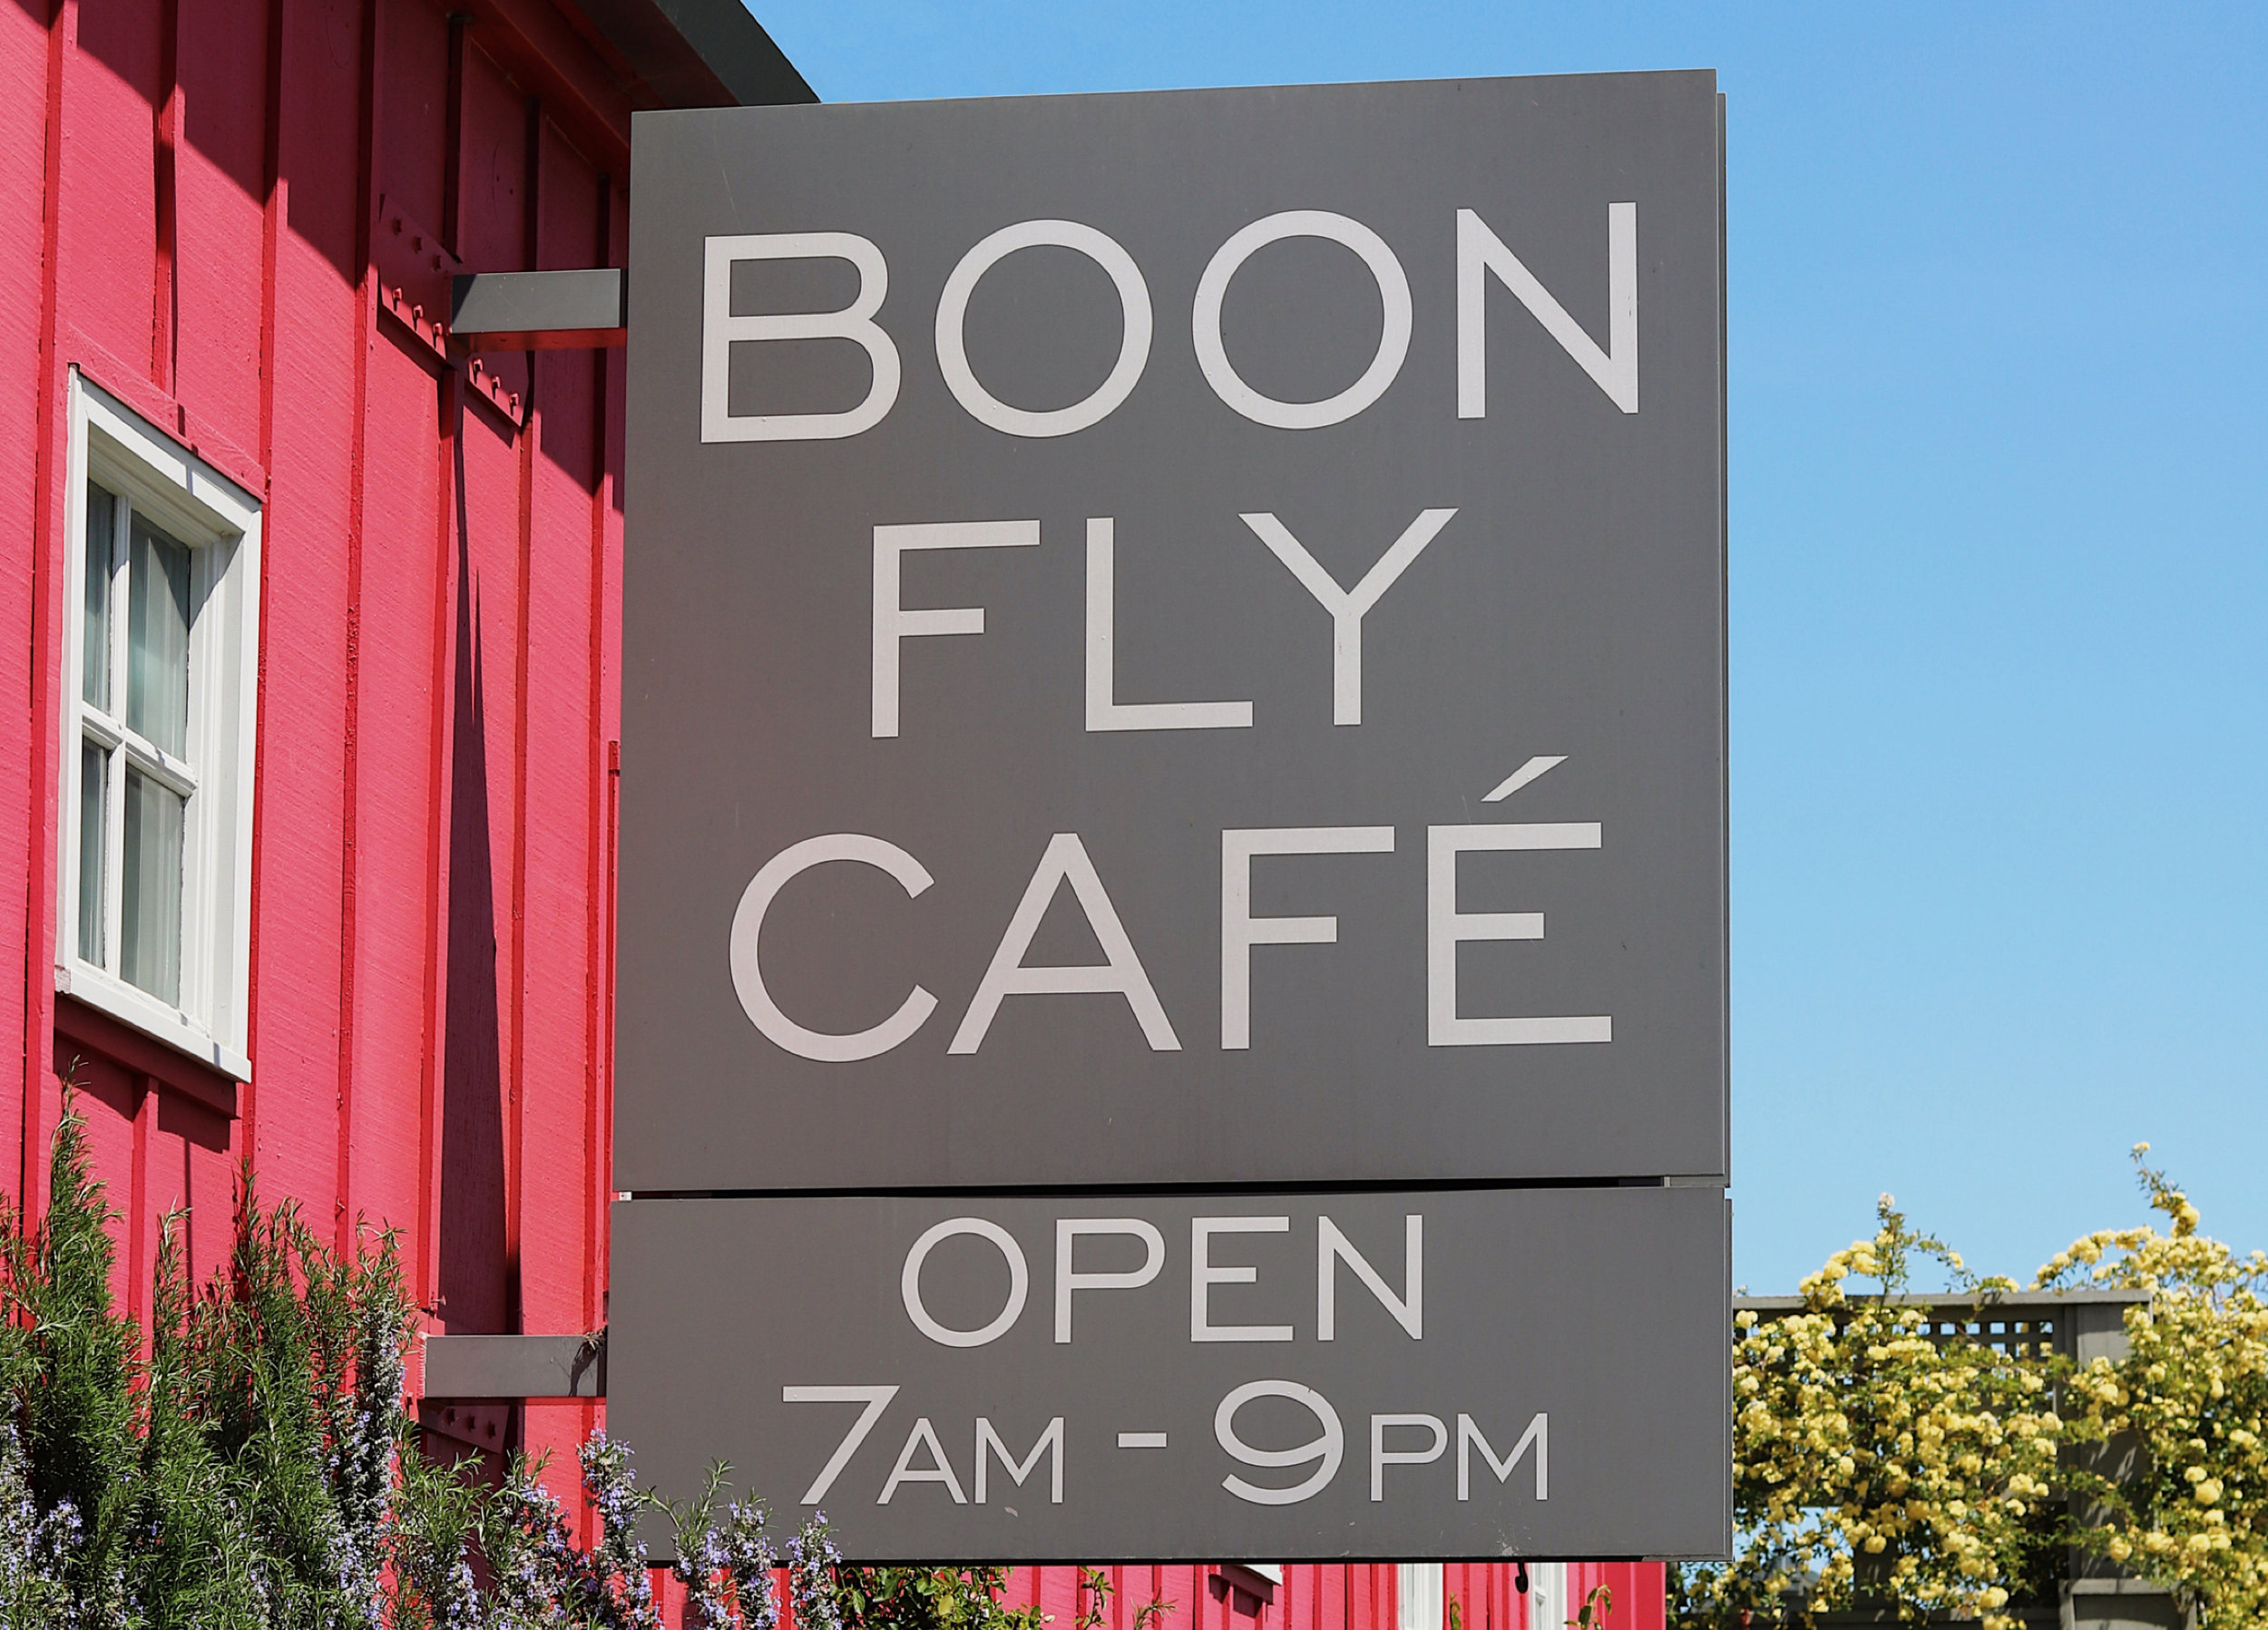 Boon fly café - Carneros Resort and Spa, 4048 Sonoma Hwy, Napa, CA 94559